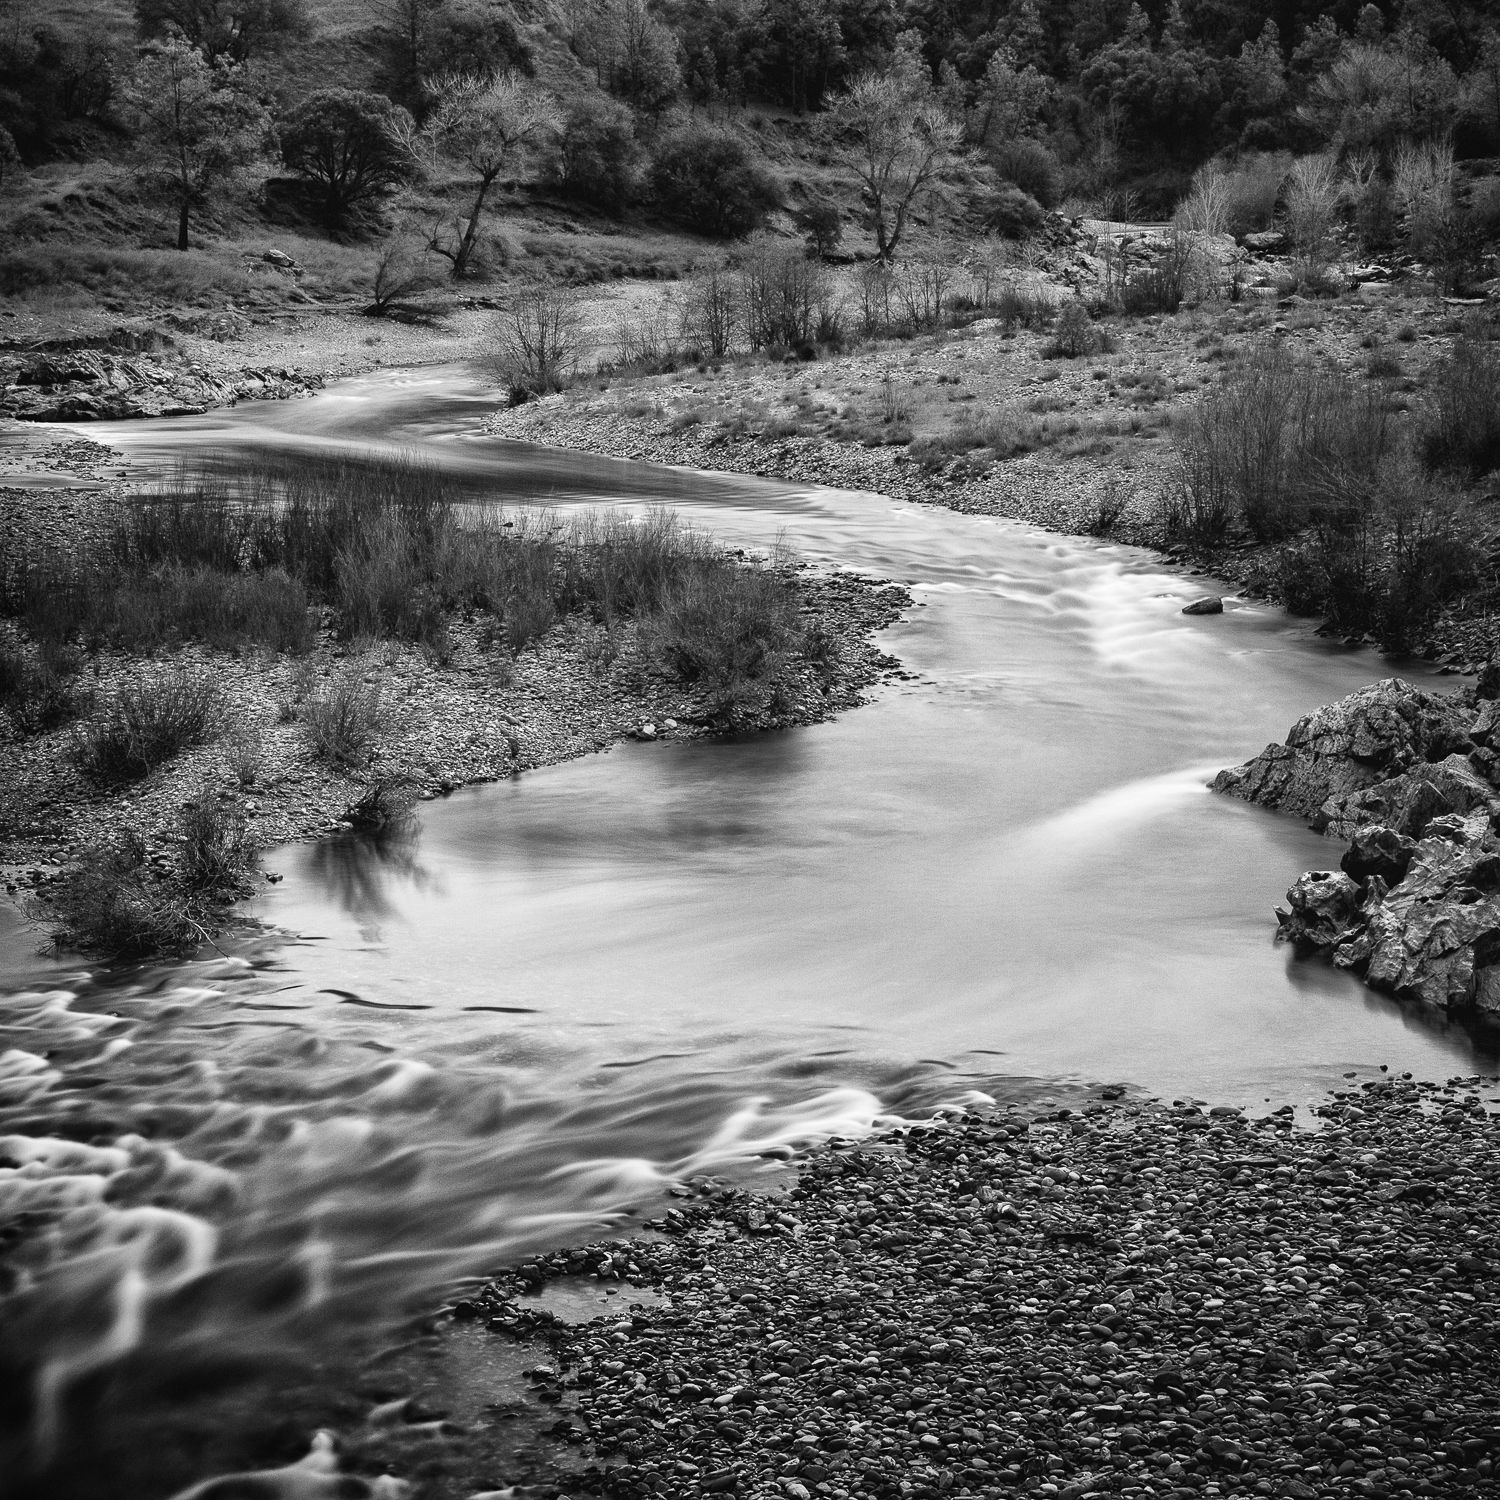 American River Confluence, Study 1, Placer County, California